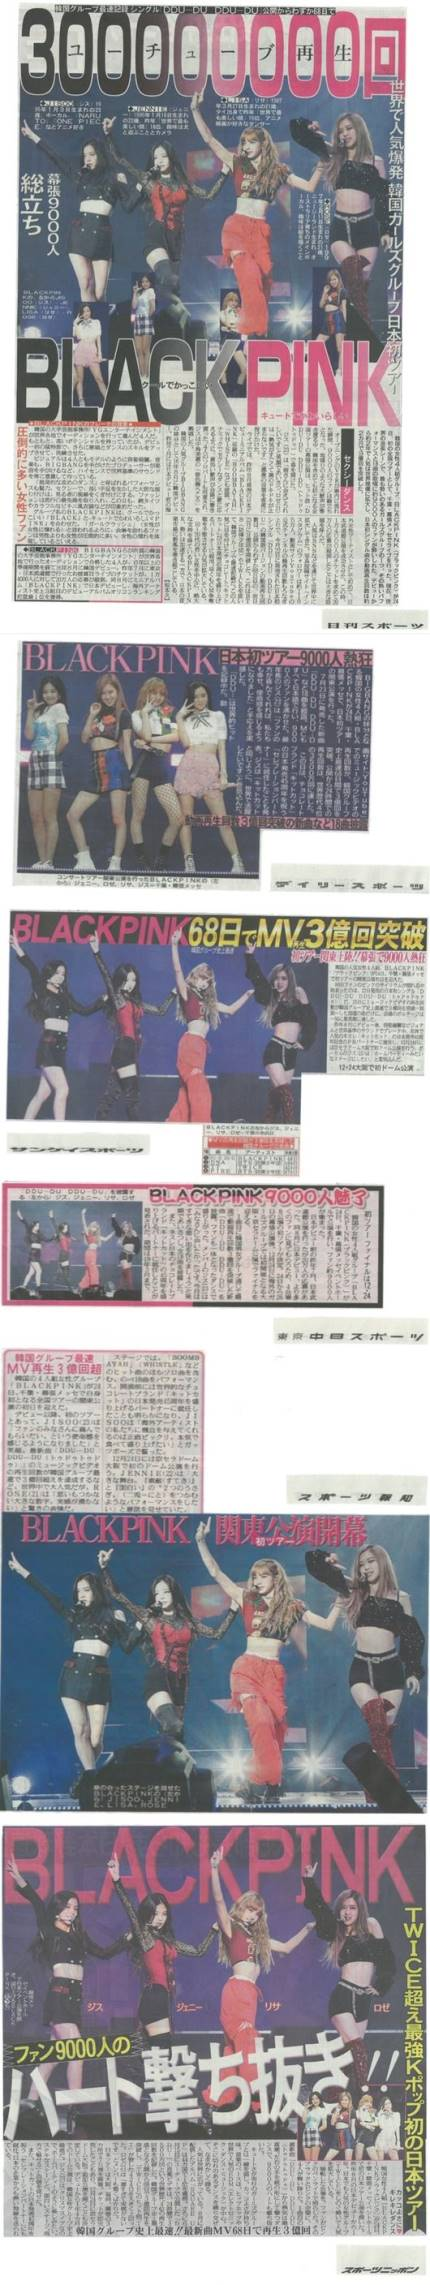 180825 bp arena tour japanese press